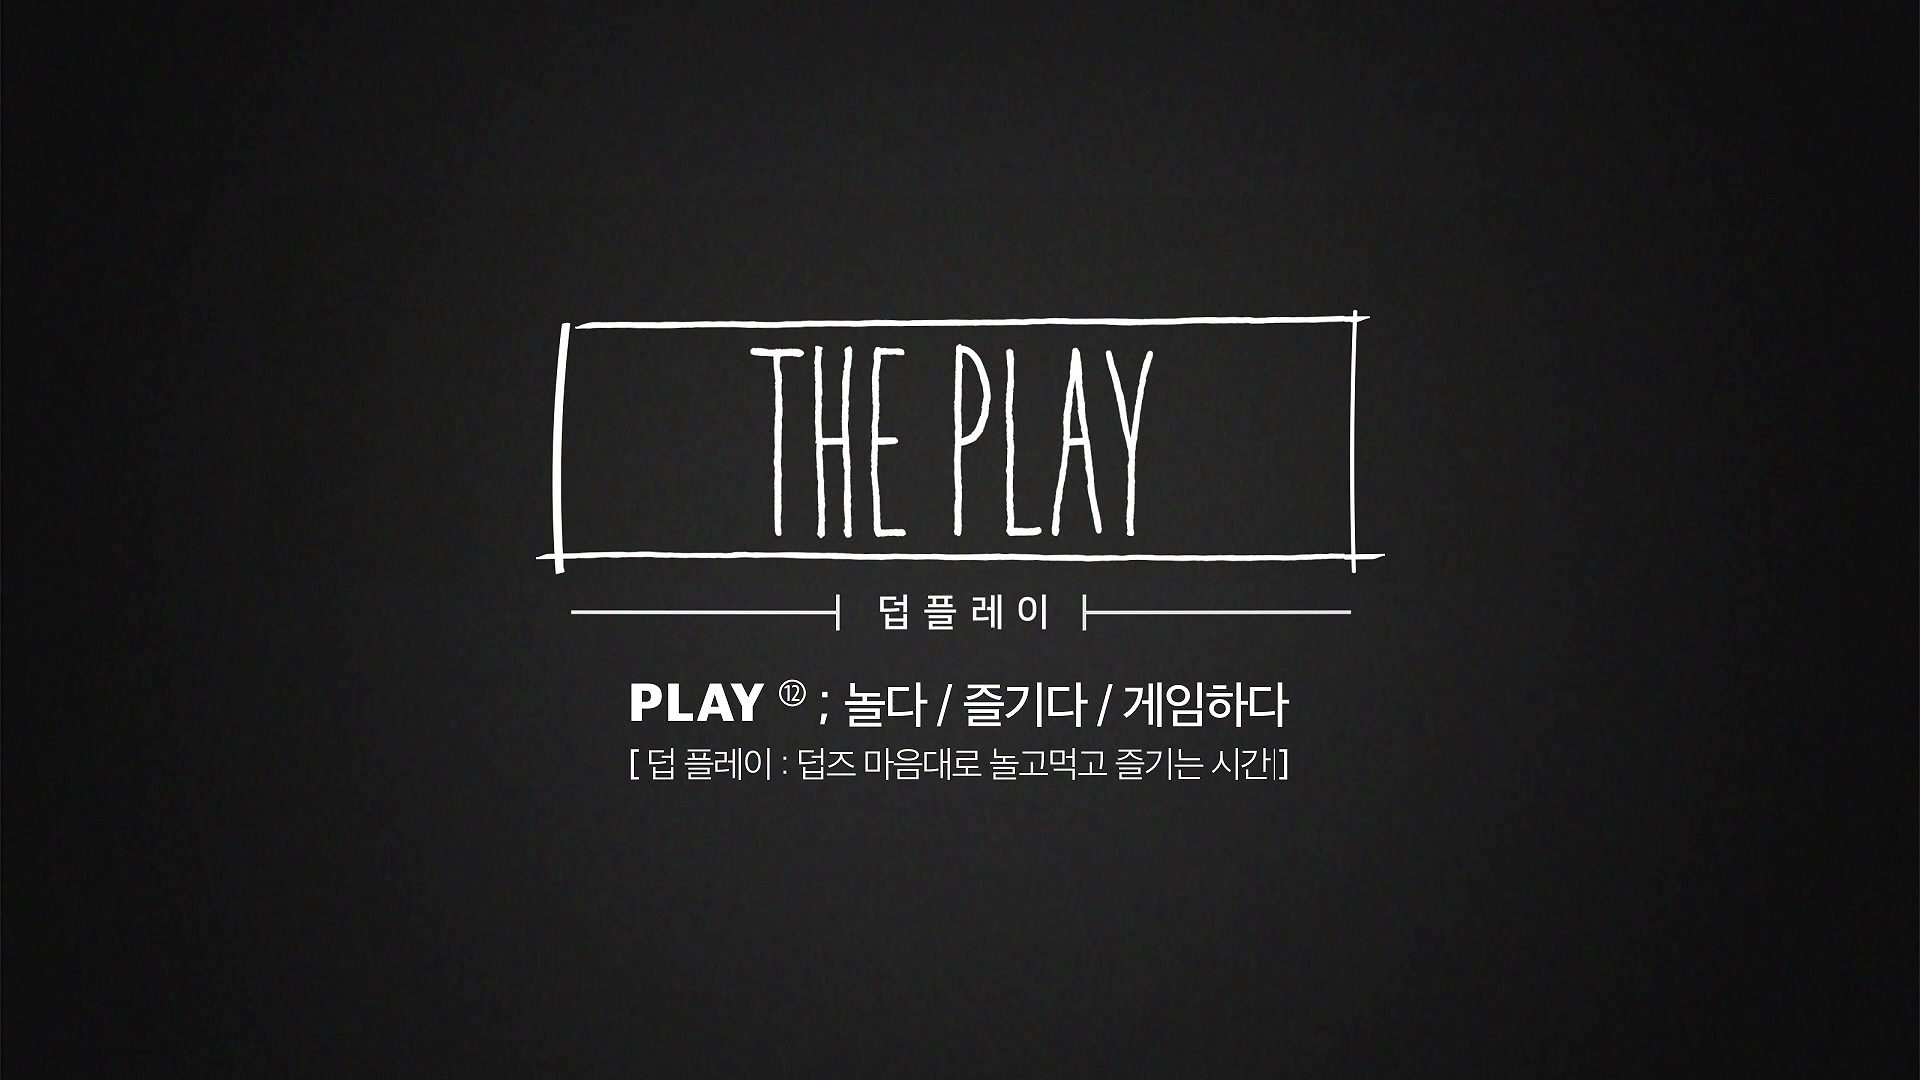 [덥:플레이(THE PLAY)] EP.1 Children's Day SP - 상연&주학년(SANGYEON&JUHAKNYEON)